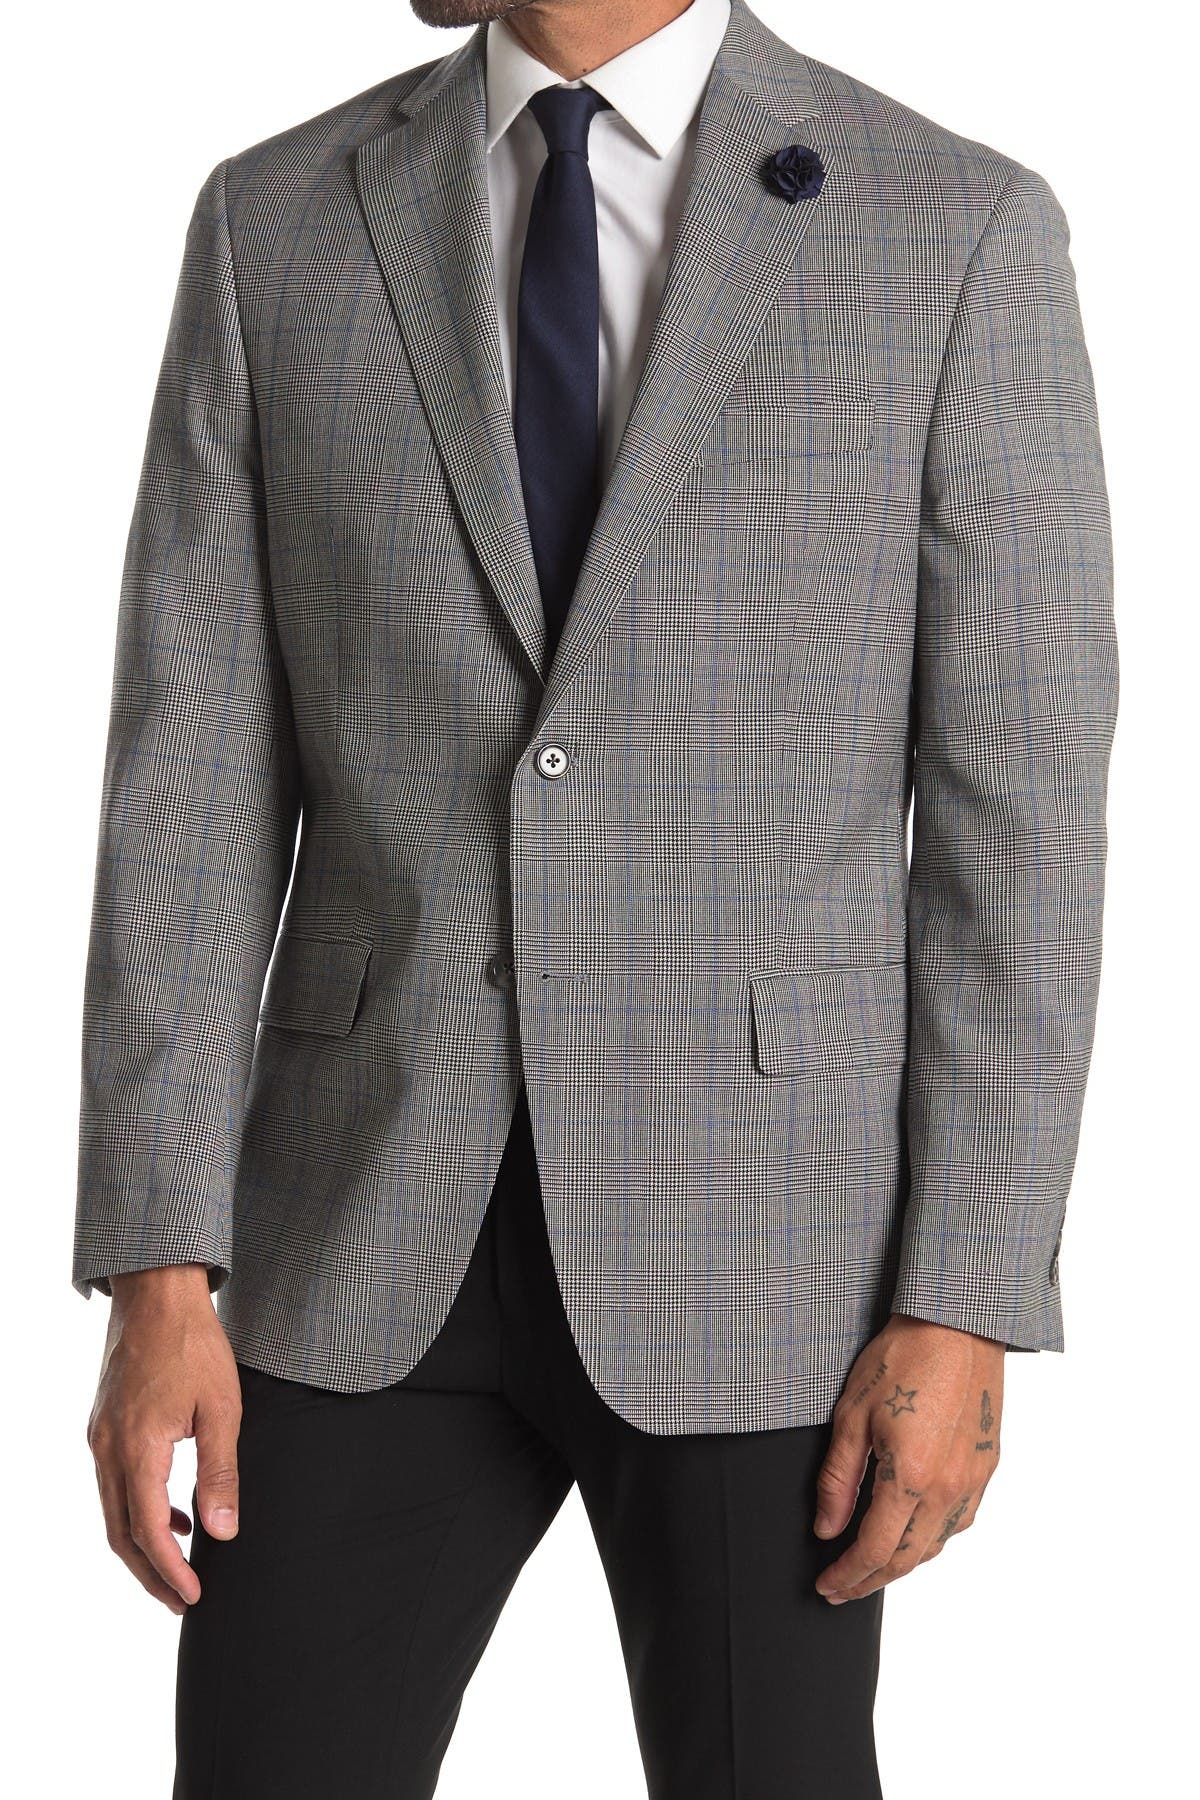 Image of Hart Schaffner Marx Black White Blue Windowpane Print Two Button Notch Lapel Wool Suit Separates Blazer